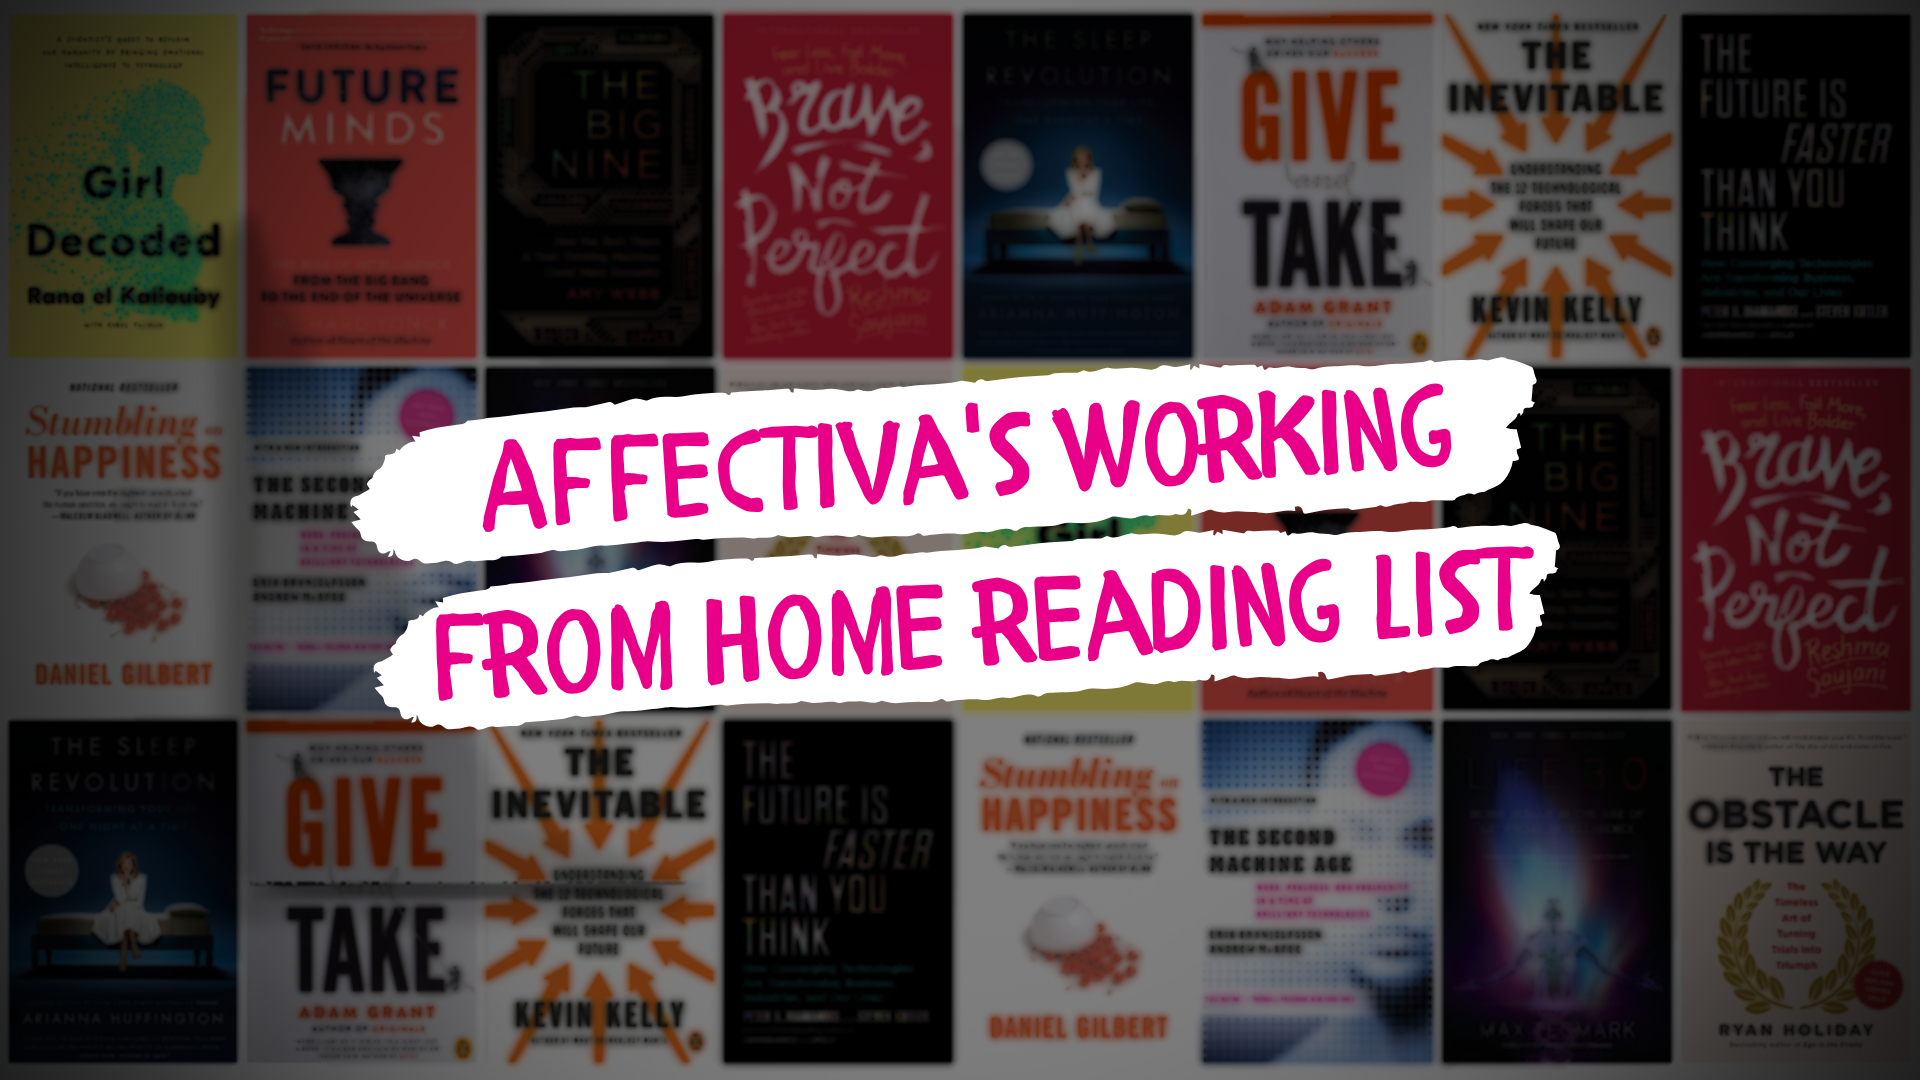 Working From Home Reading List: 12 Titles to Inspire